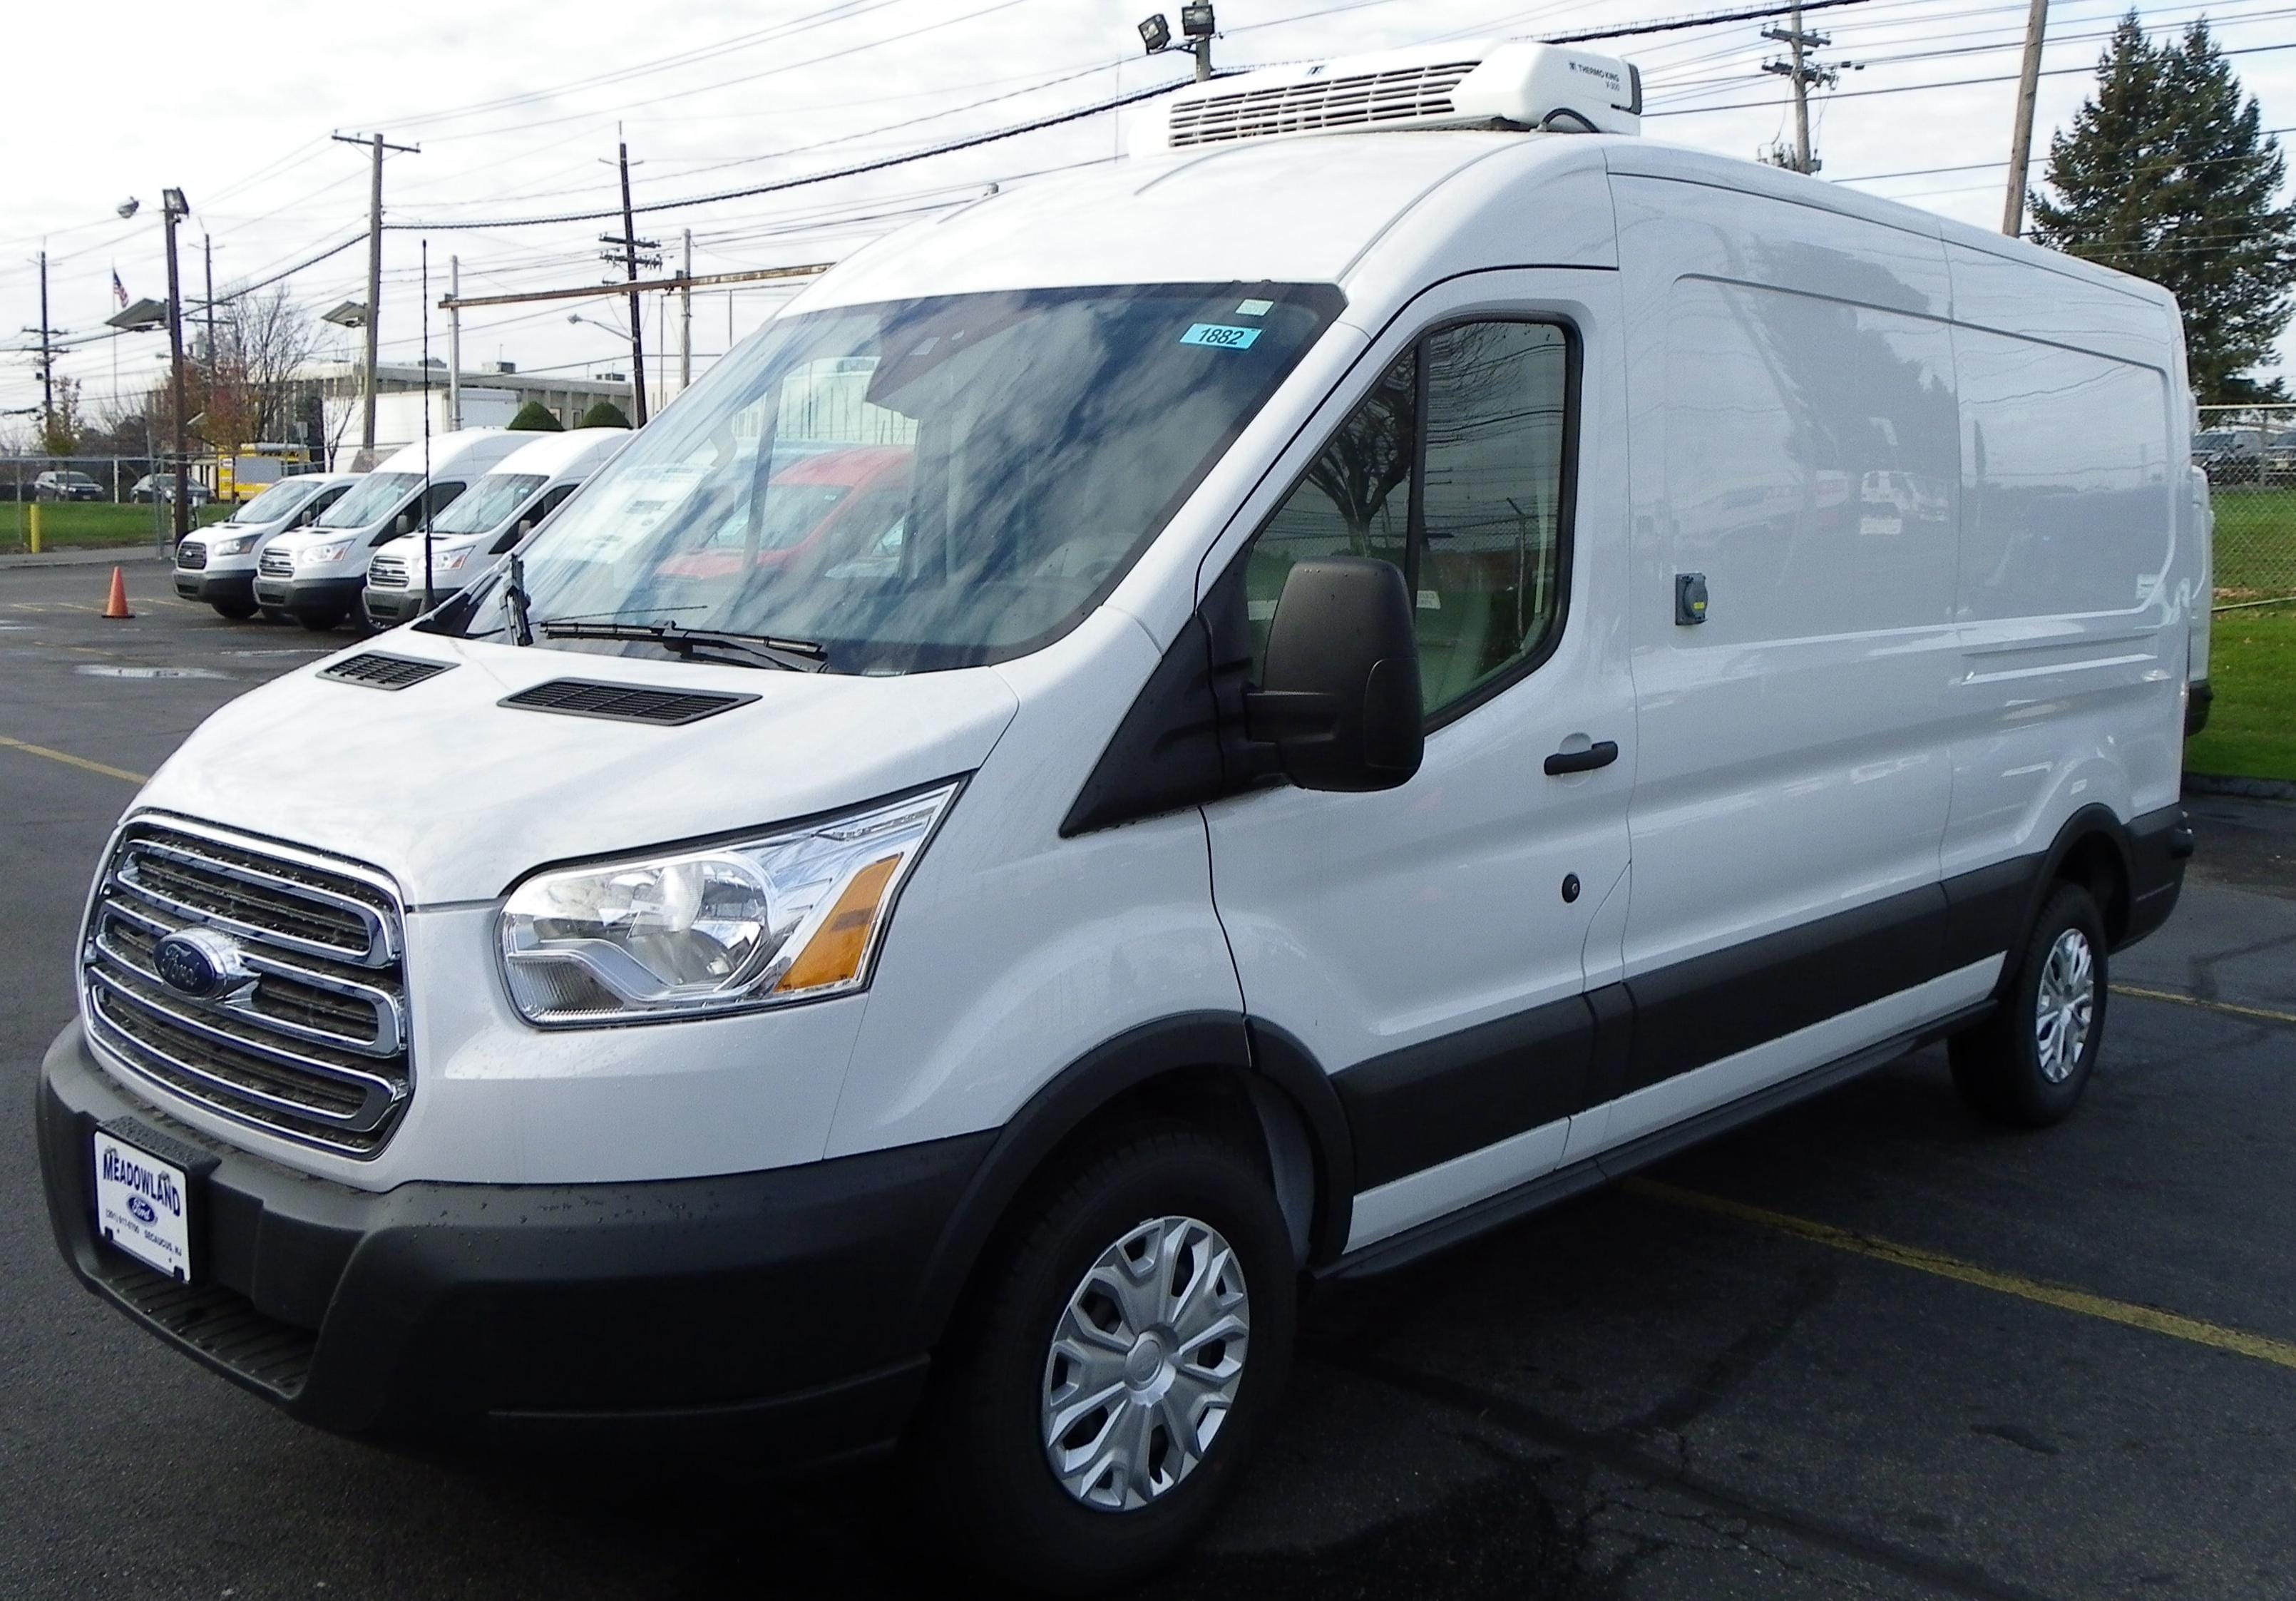 2017 Ford Transit Vanwagon Refrigerated Van Refrigerated Van